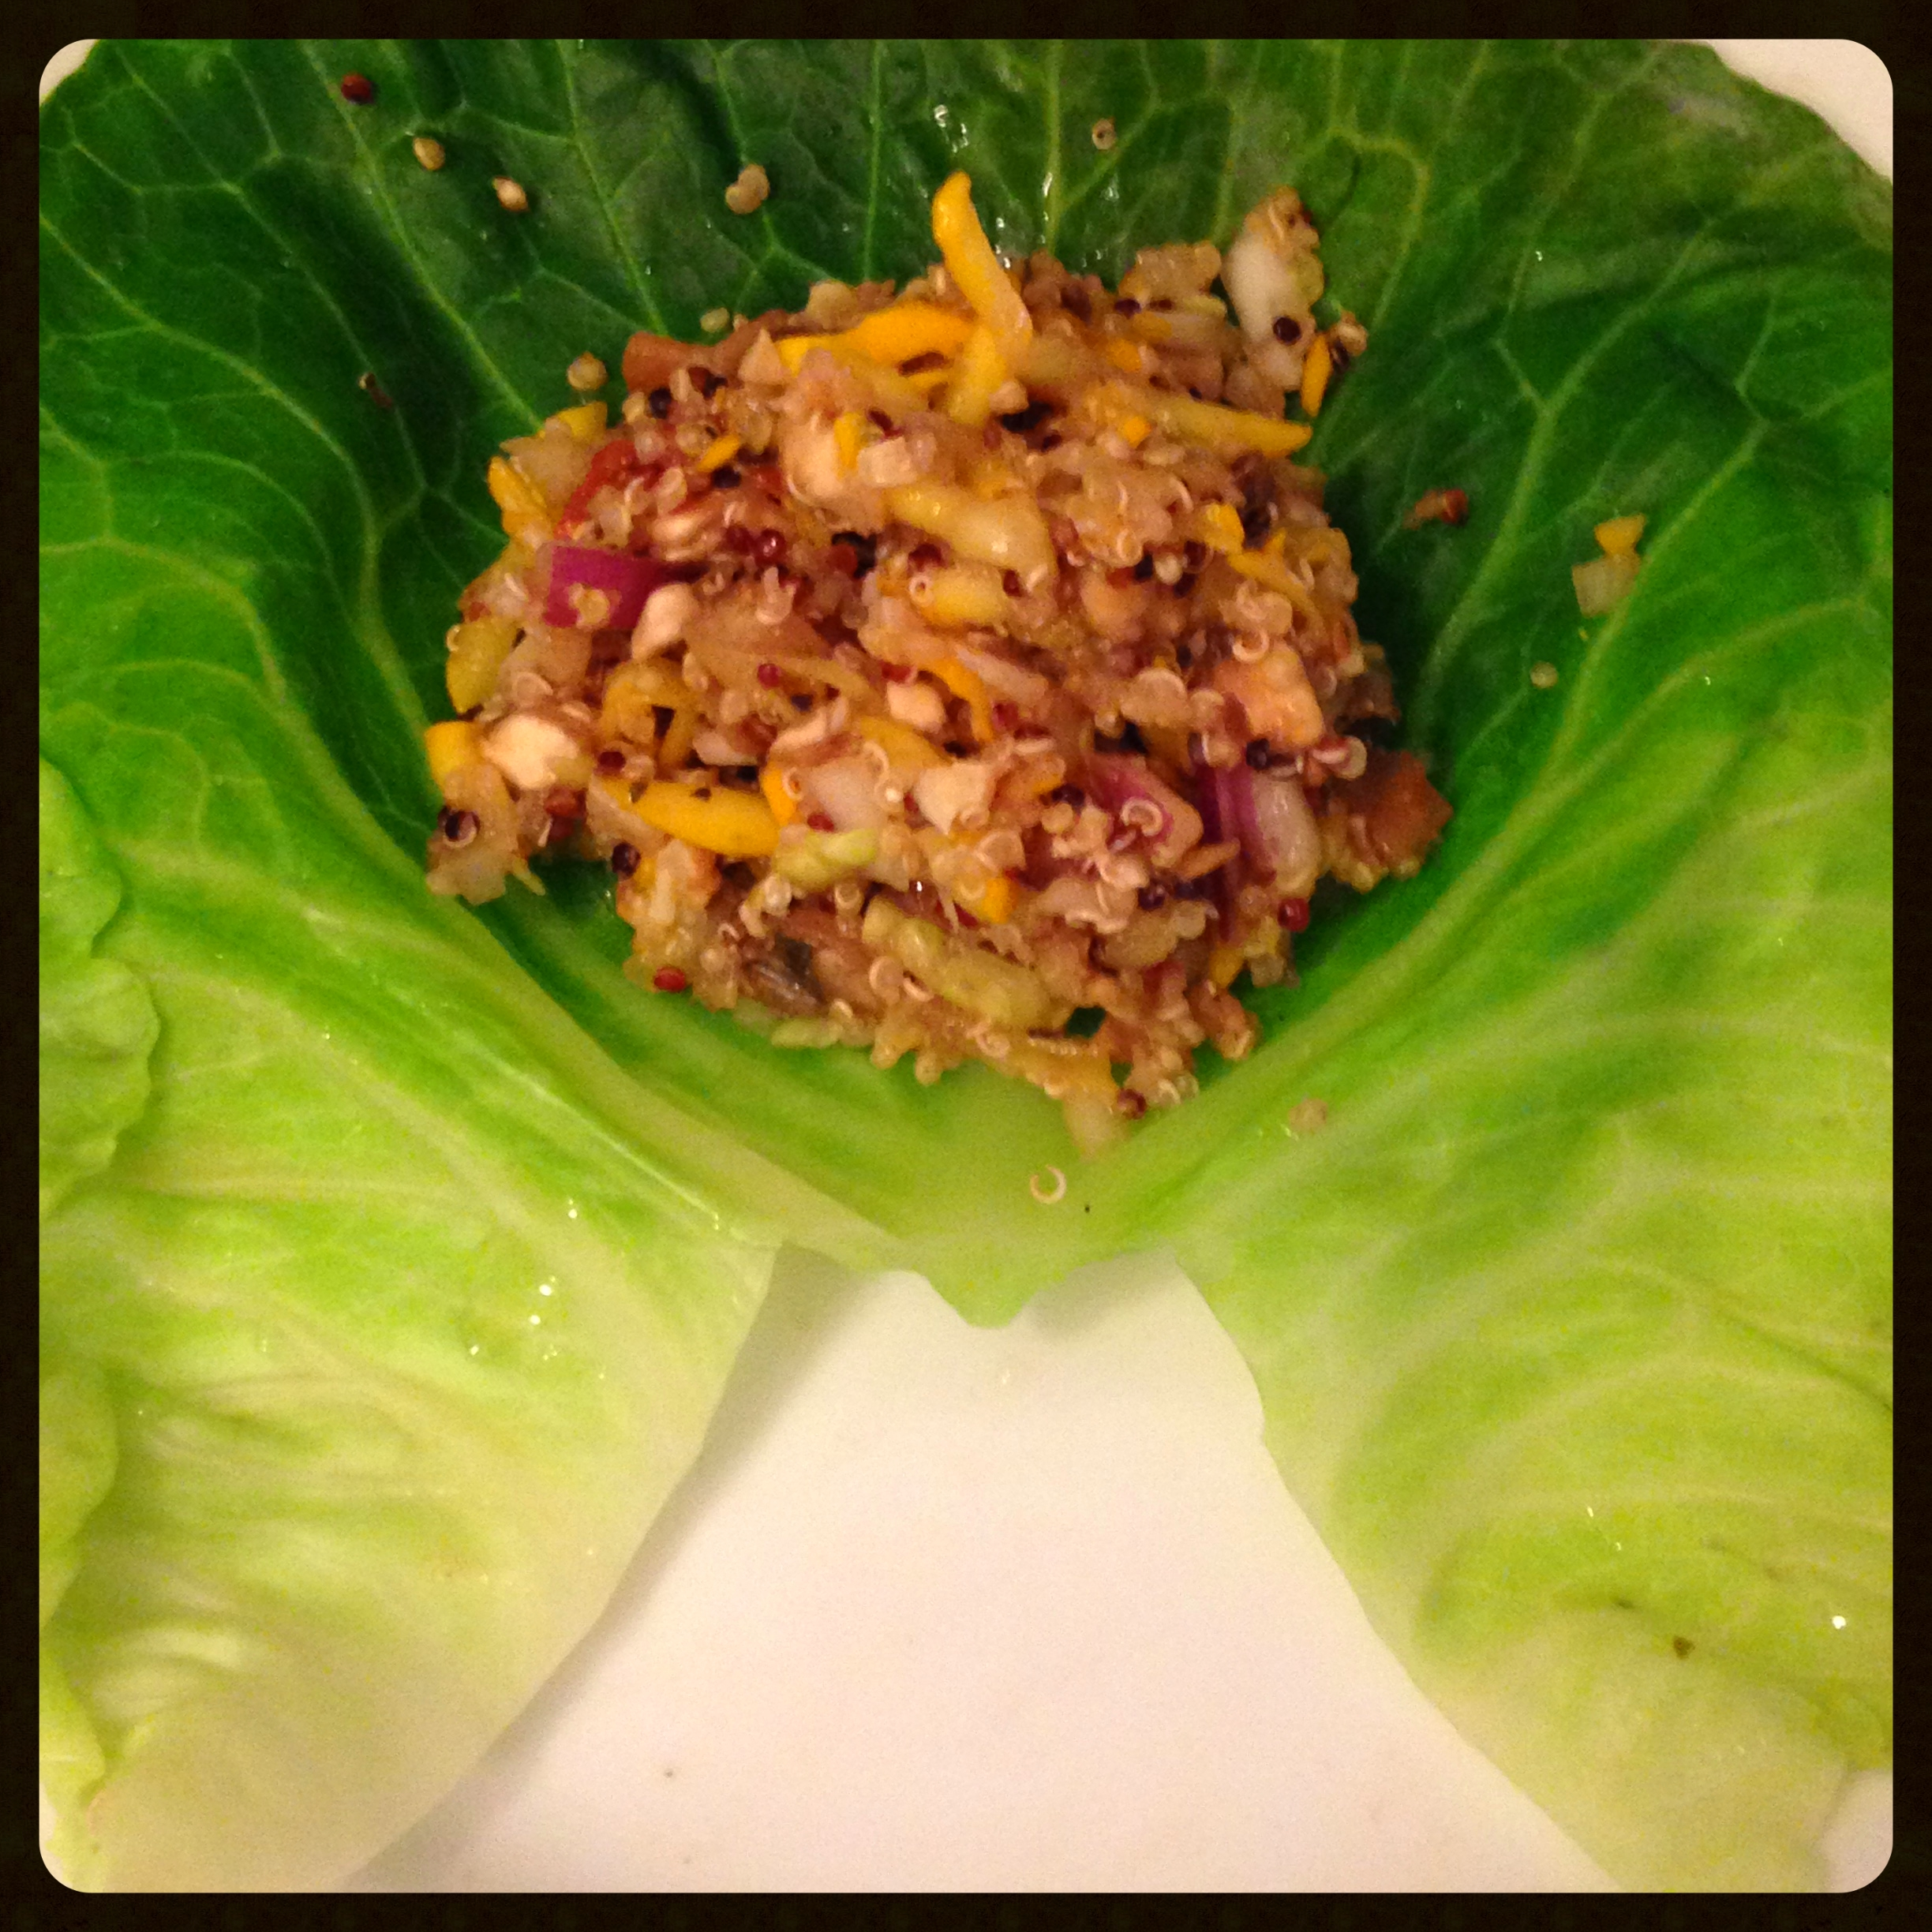 cabbage leaf with filling